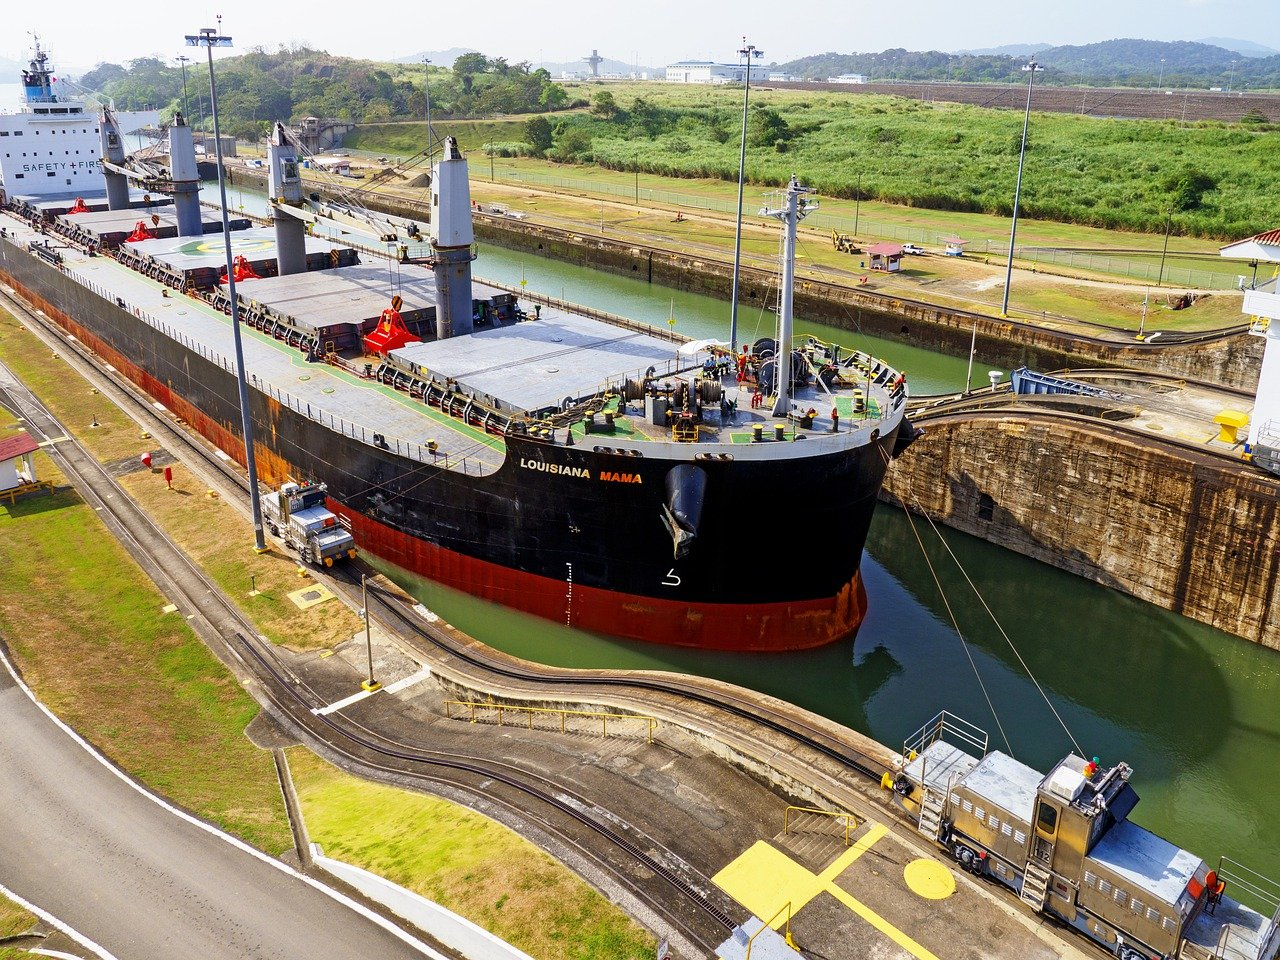 Panama Canal Tour and Casco Antiguo 2